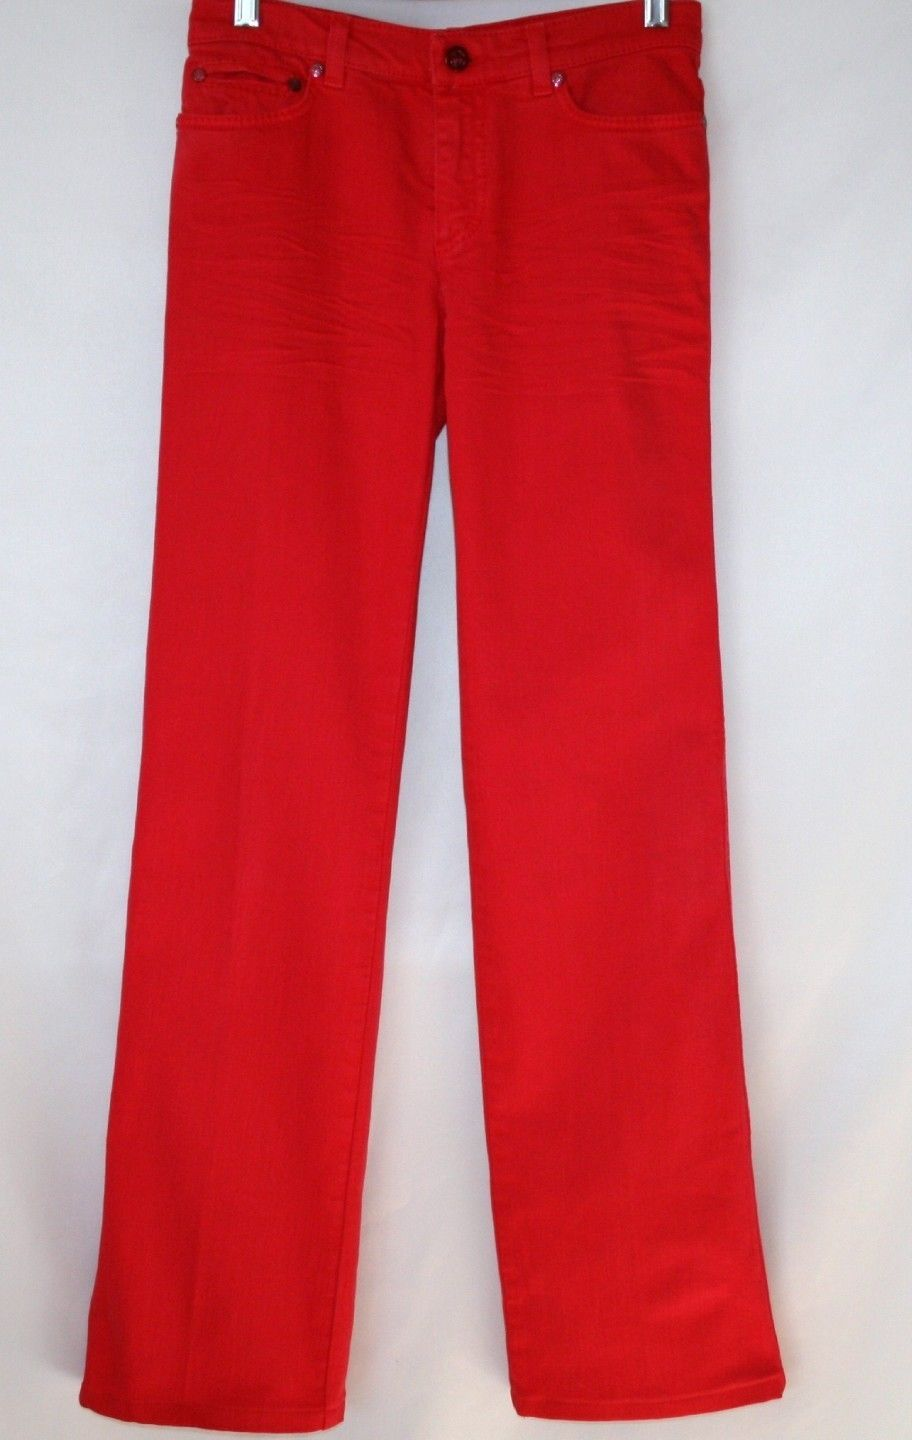 Roberto Cavalli 5 Pkt  Boot Cut Shocking Pink Jeans Pants Size 38 / 4  #1235